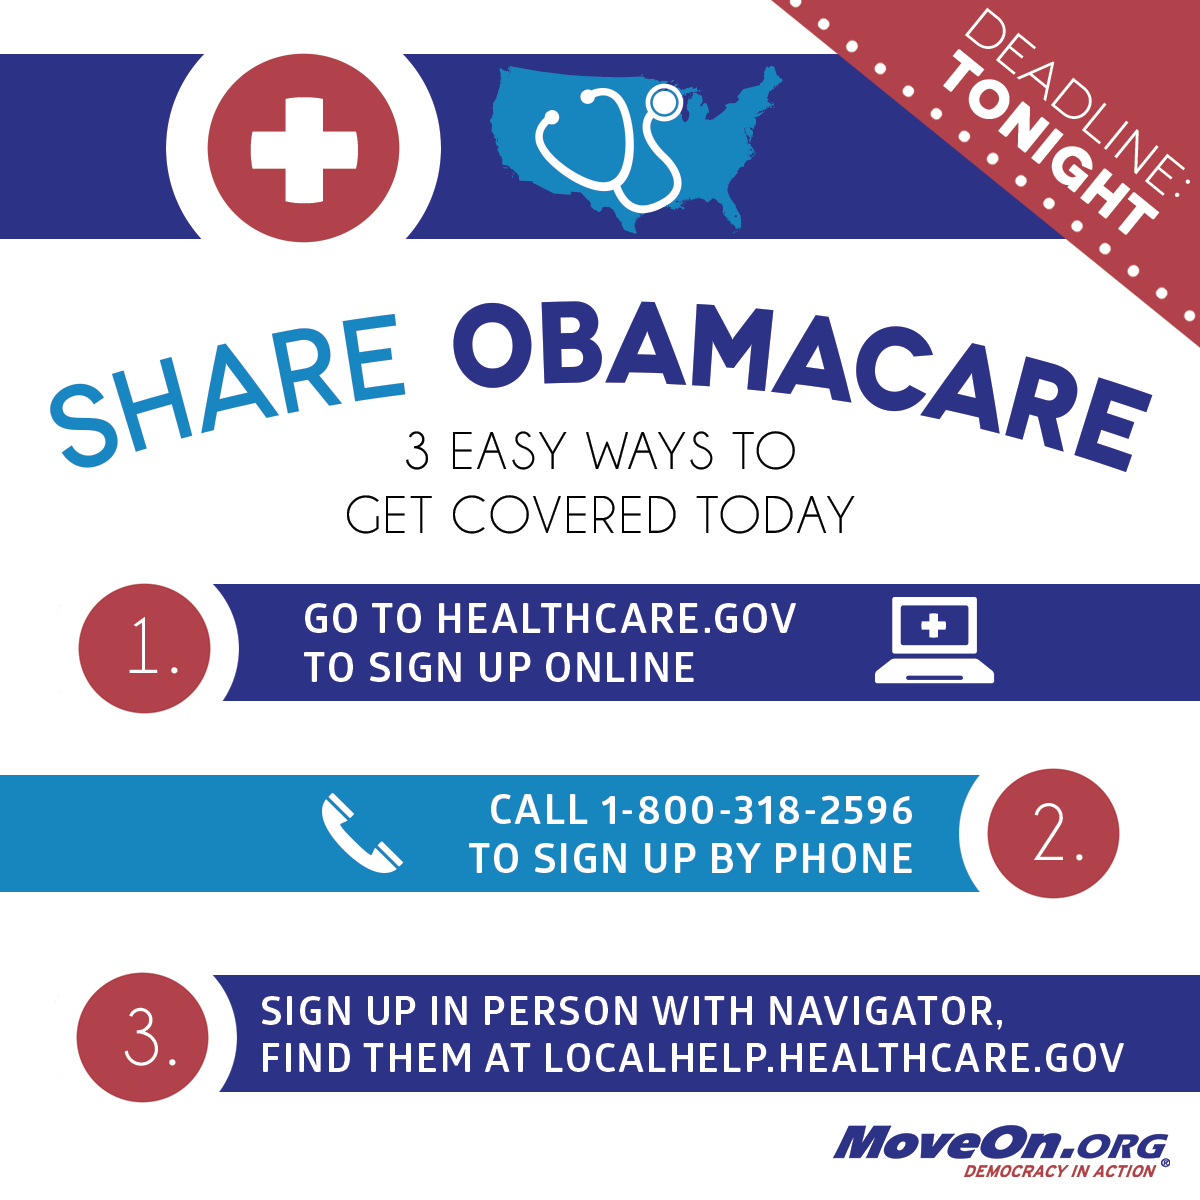 Share the three ways to signup for Obamacare today